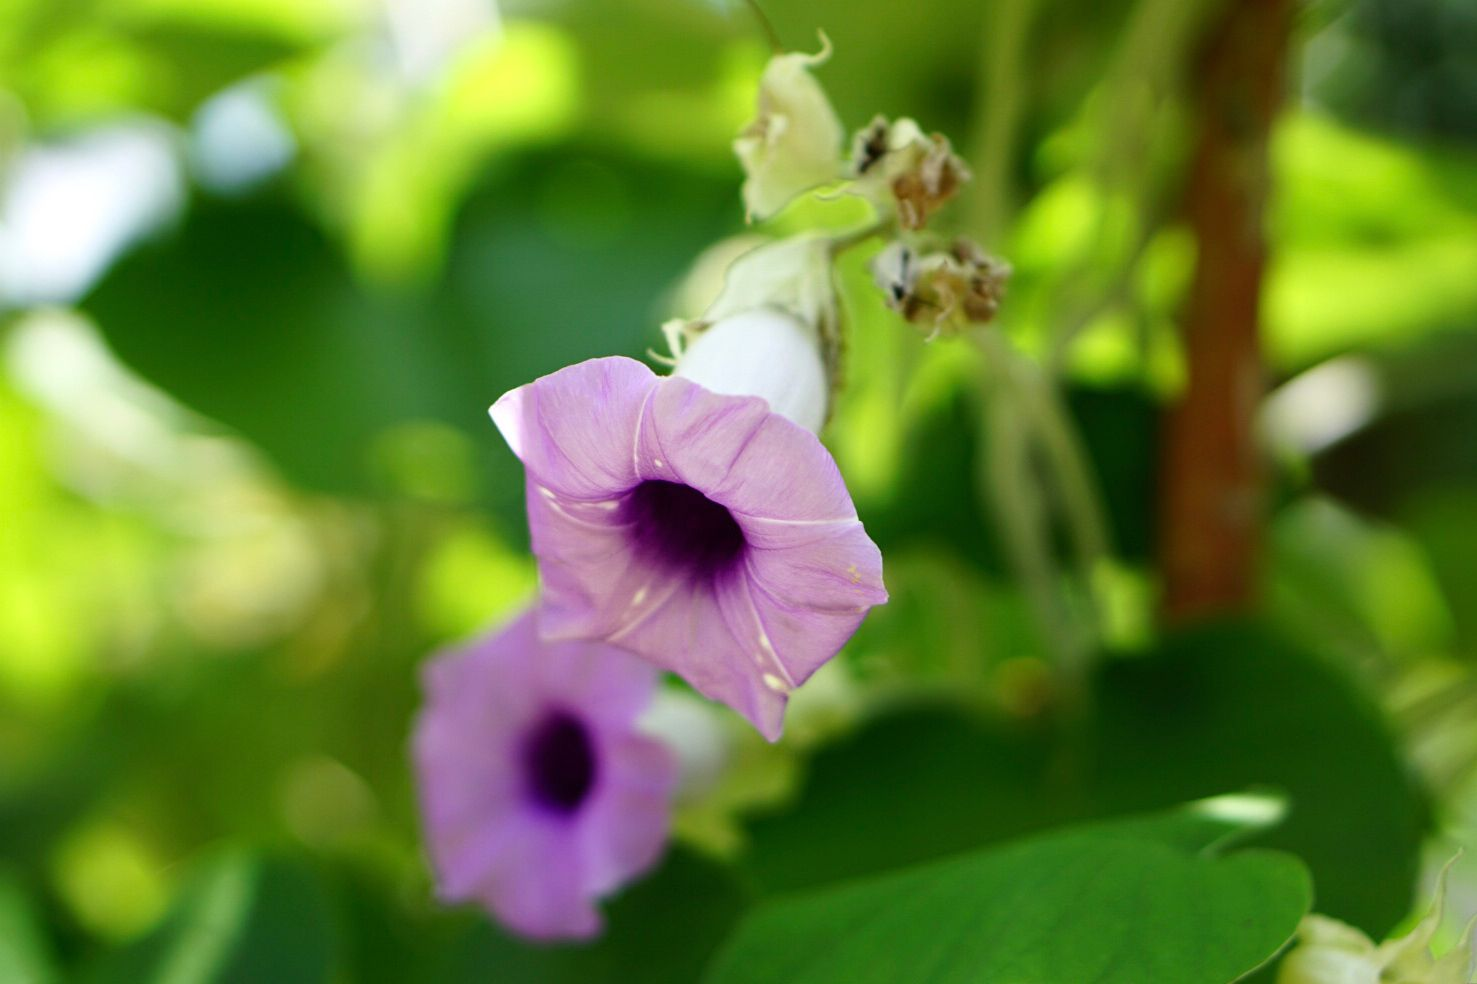 Morning glory flower with light purple cup-like petals closeup